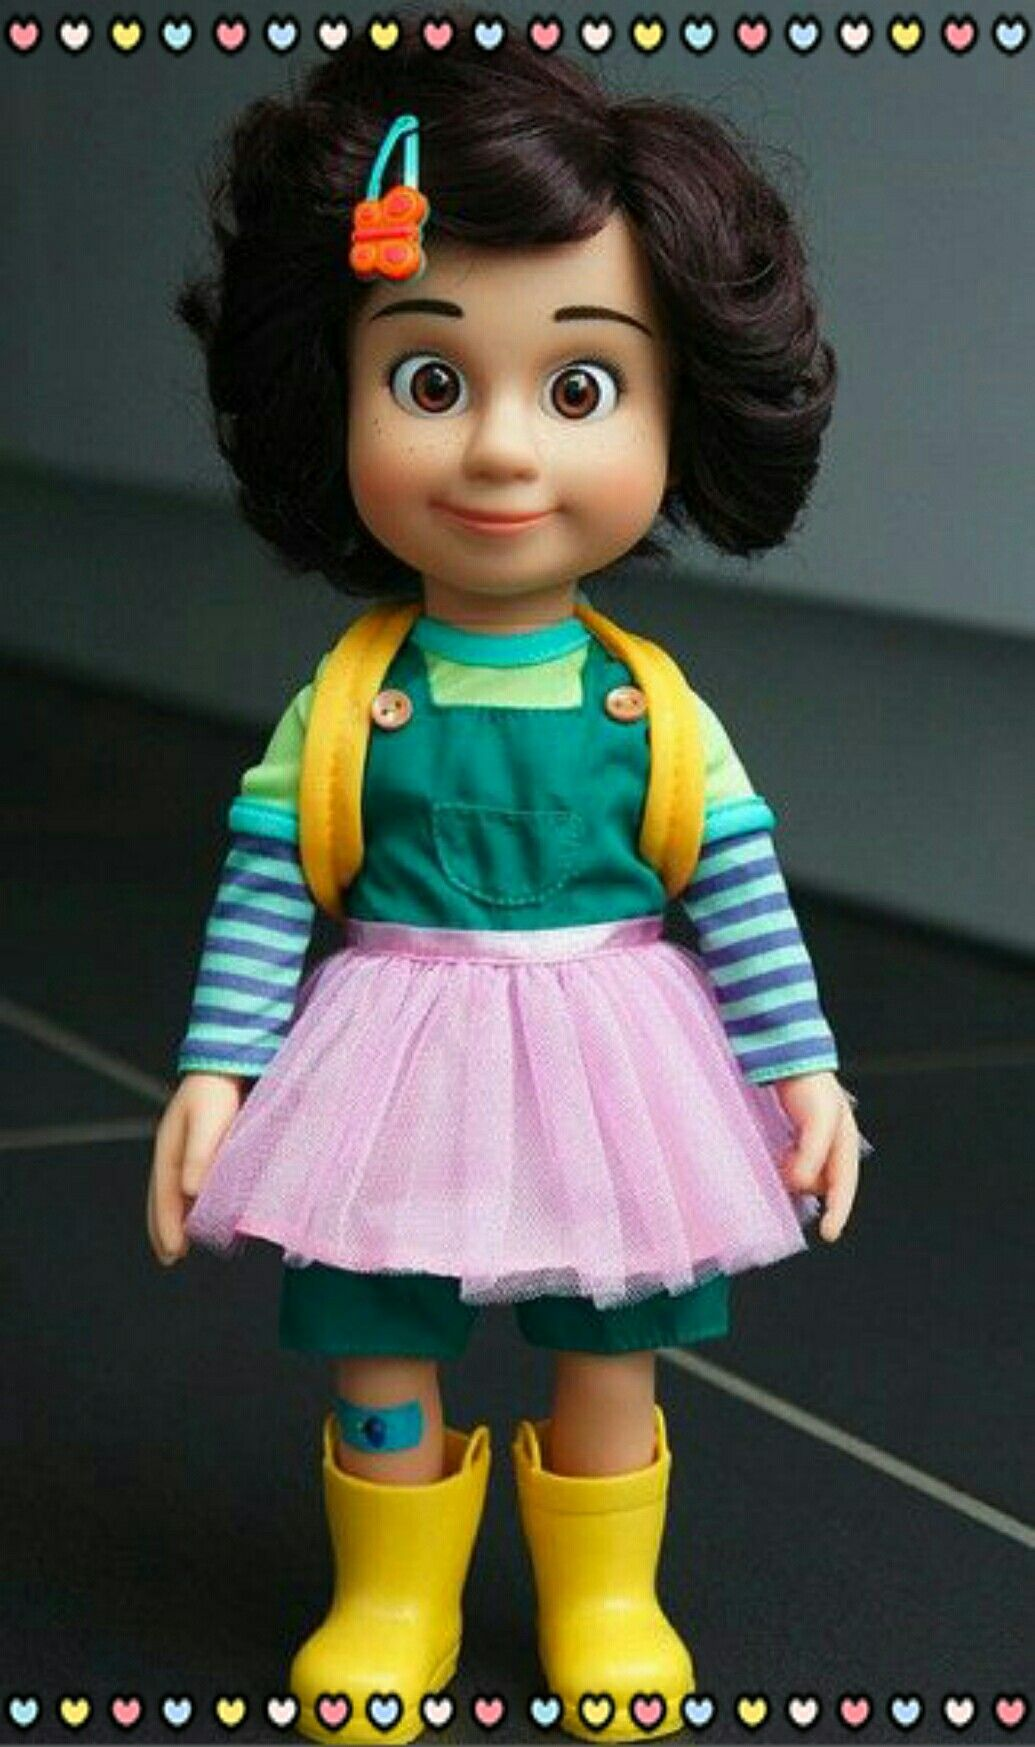 ☆Bonnie Doll from Toy Story 3☆ ▫She was sold in the UK Disney Stores only. 0c082bf285c